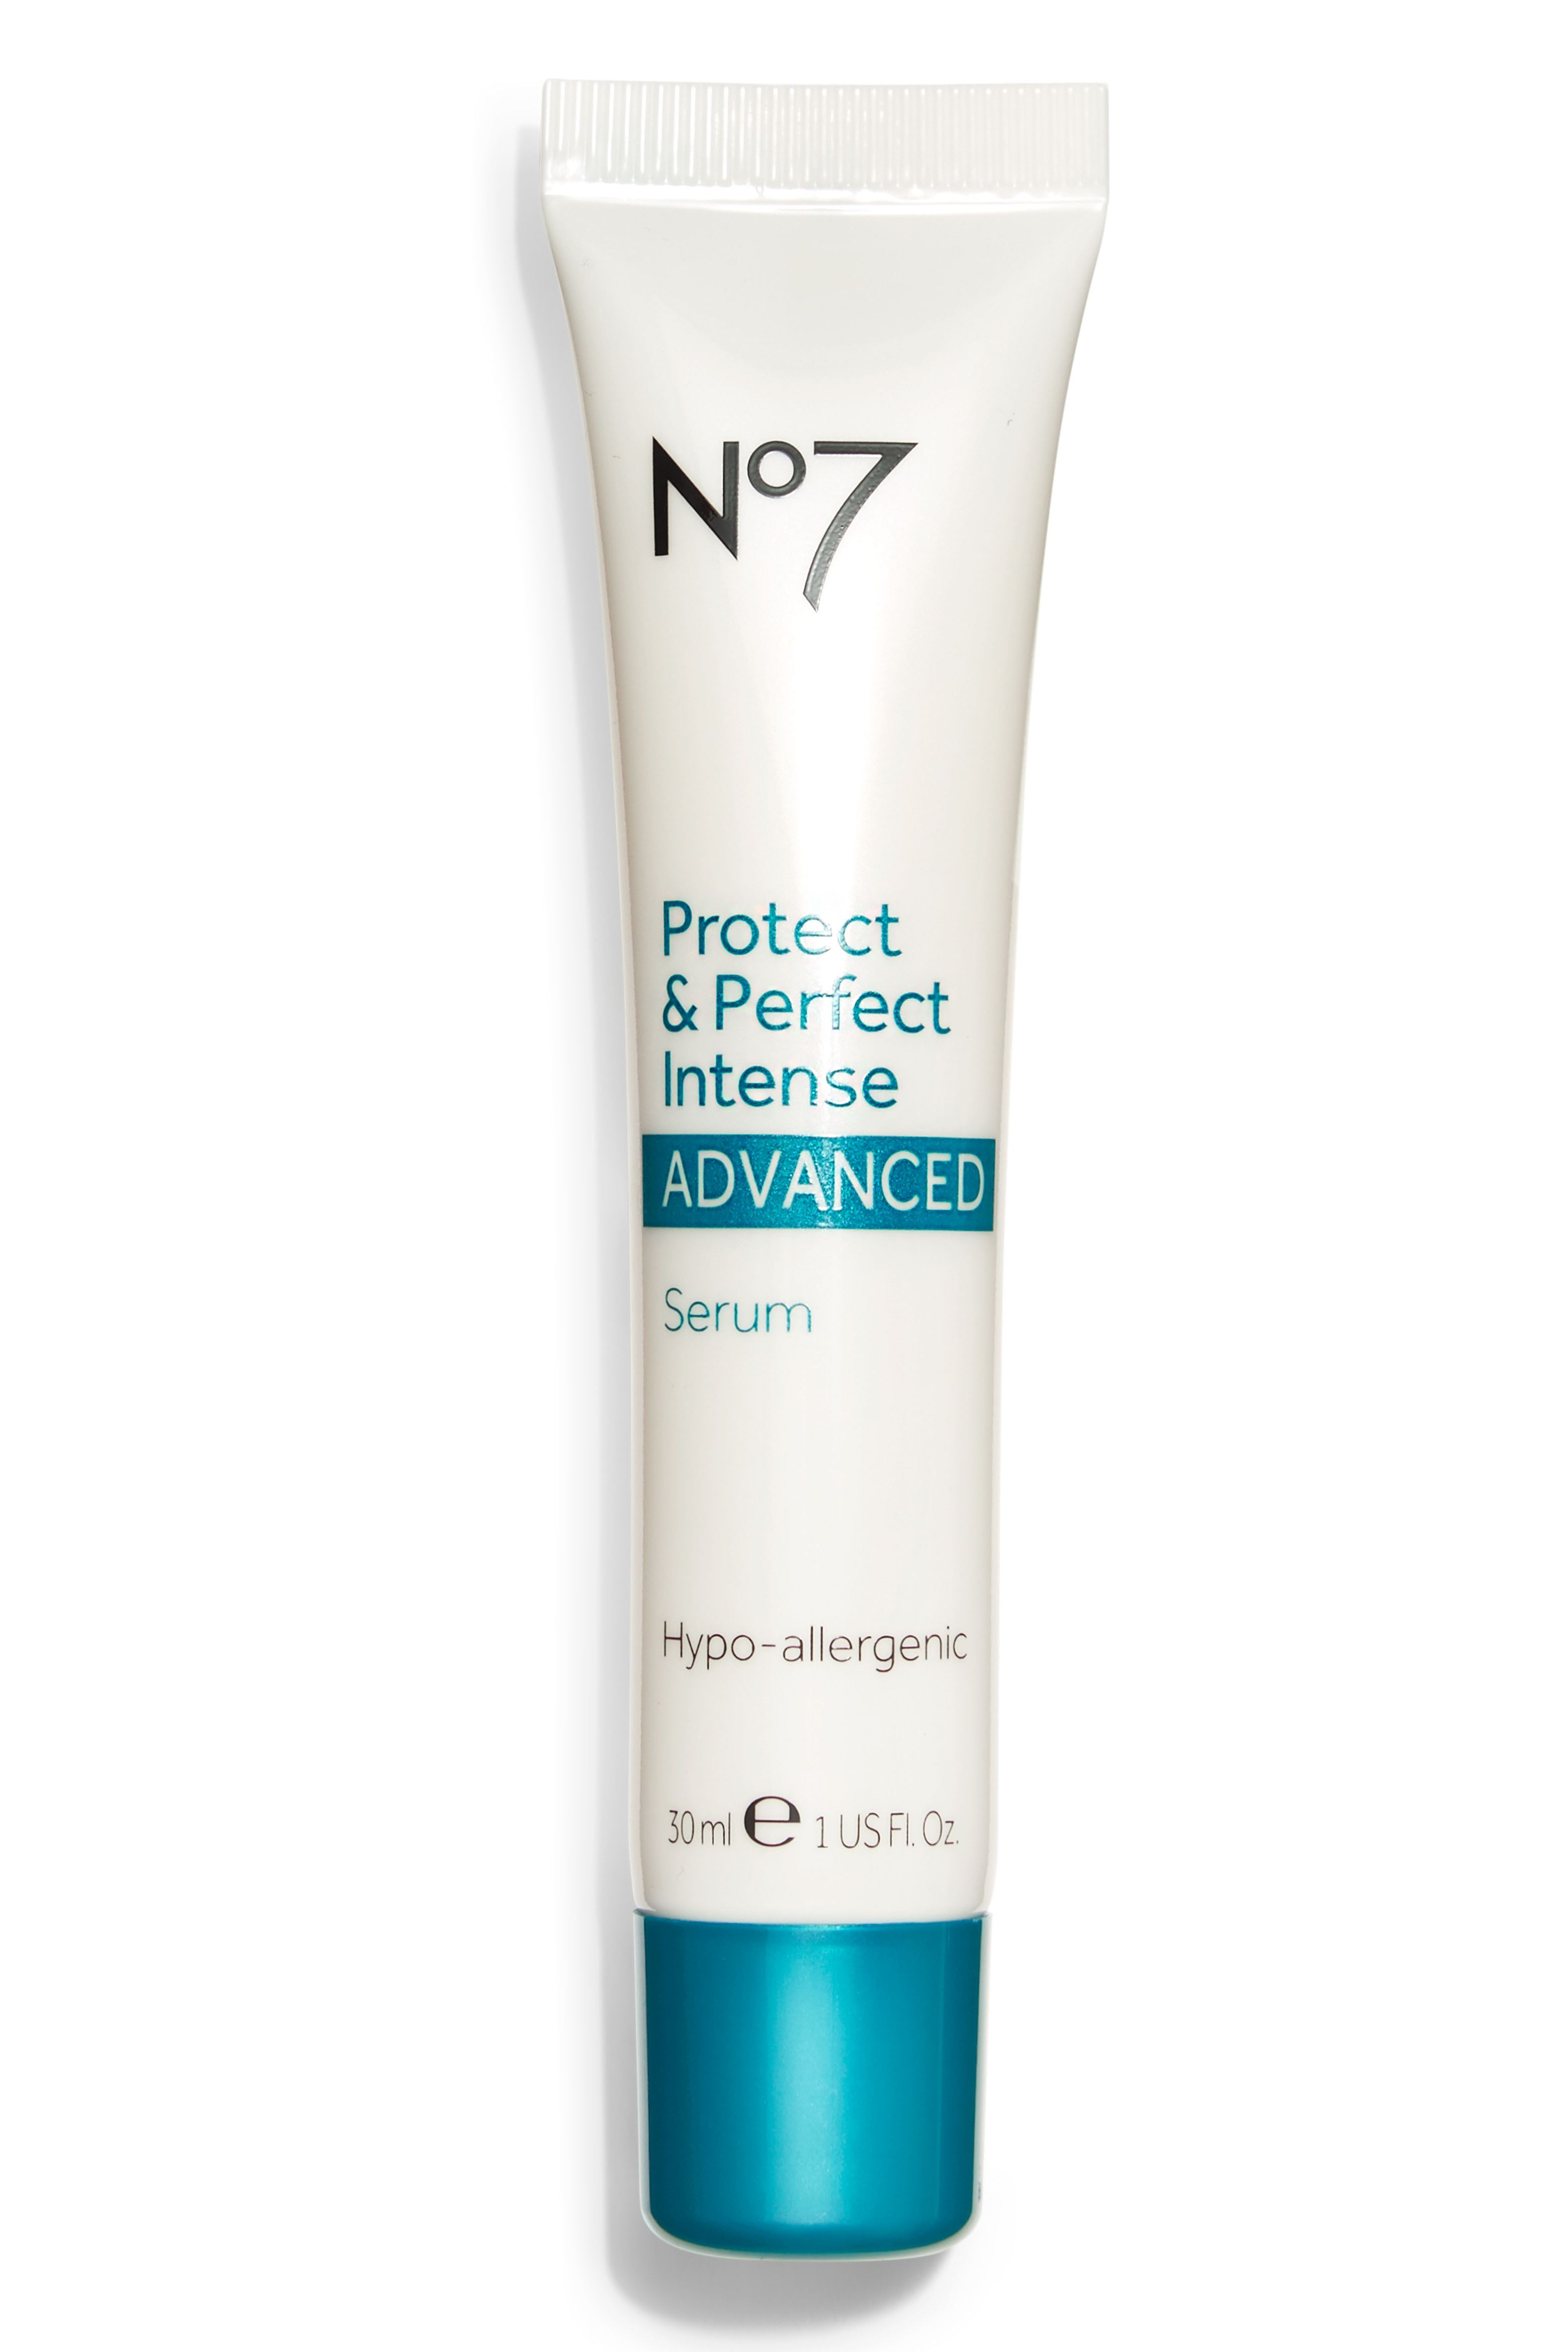 Boots No7 Protect & Perfect Intense